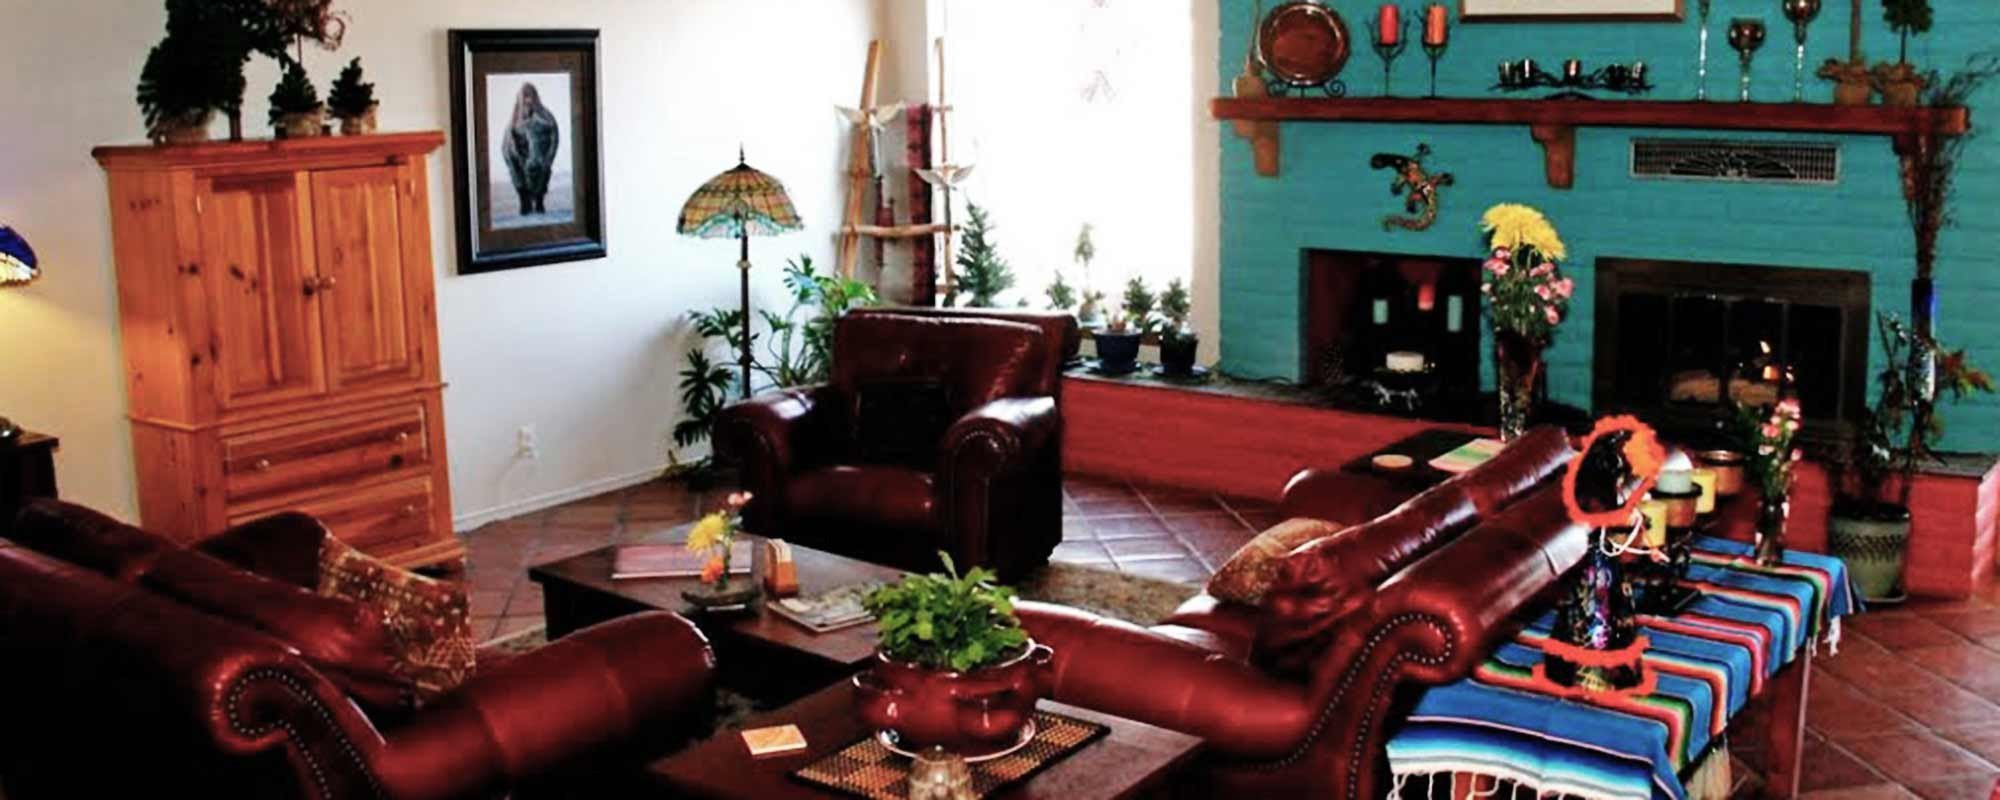 Great Room Couches and Fireplace